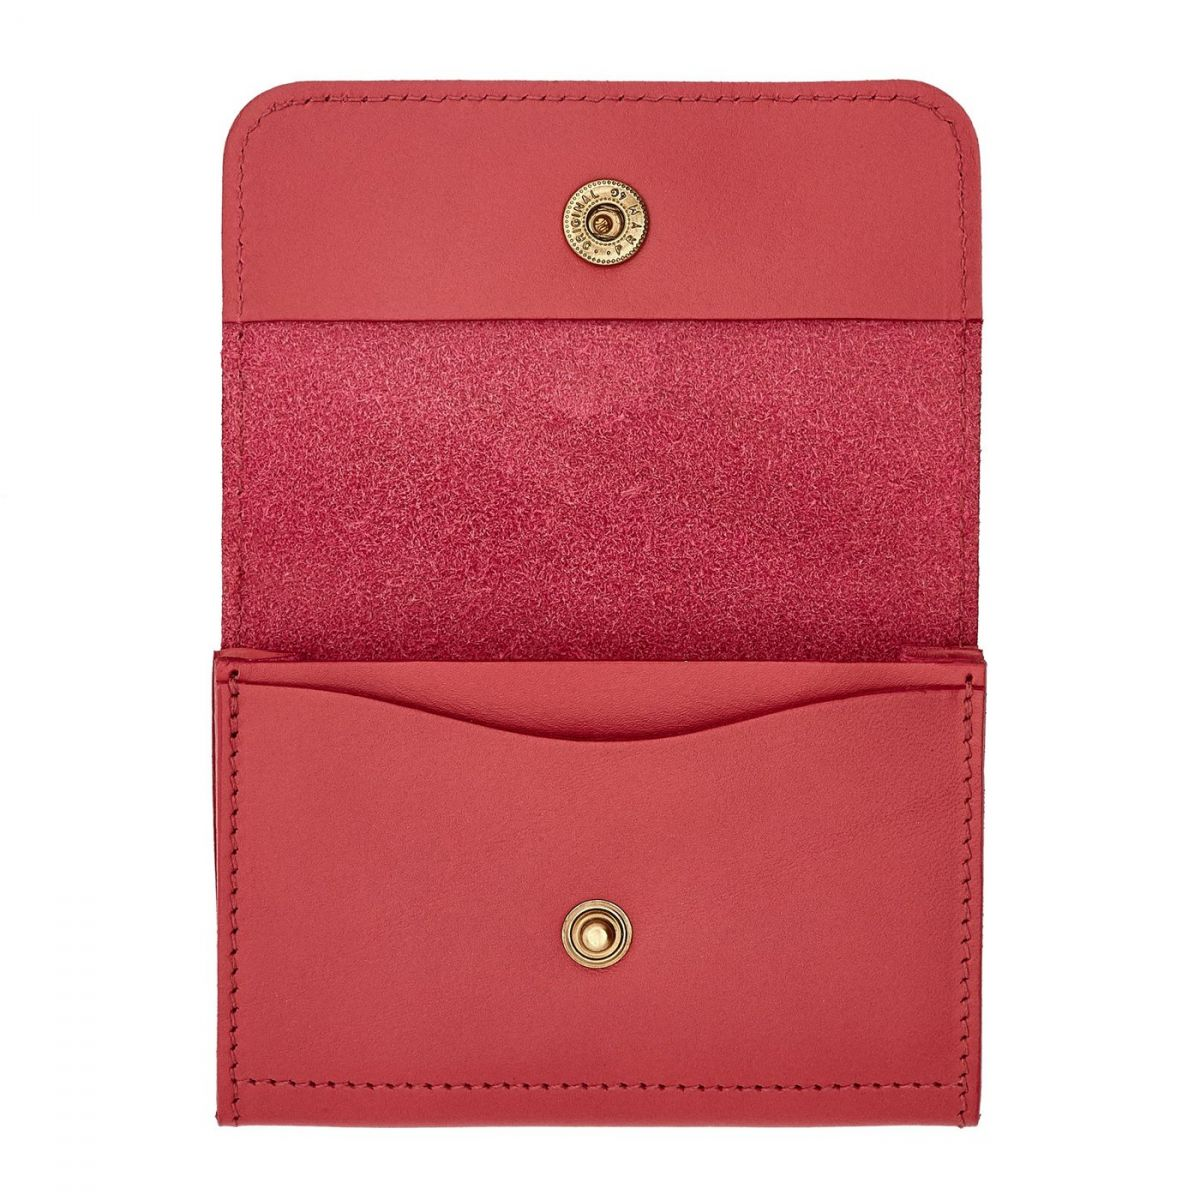 Card Case Piccolino in Cowhide Leather SCC006 color Sumac | Details